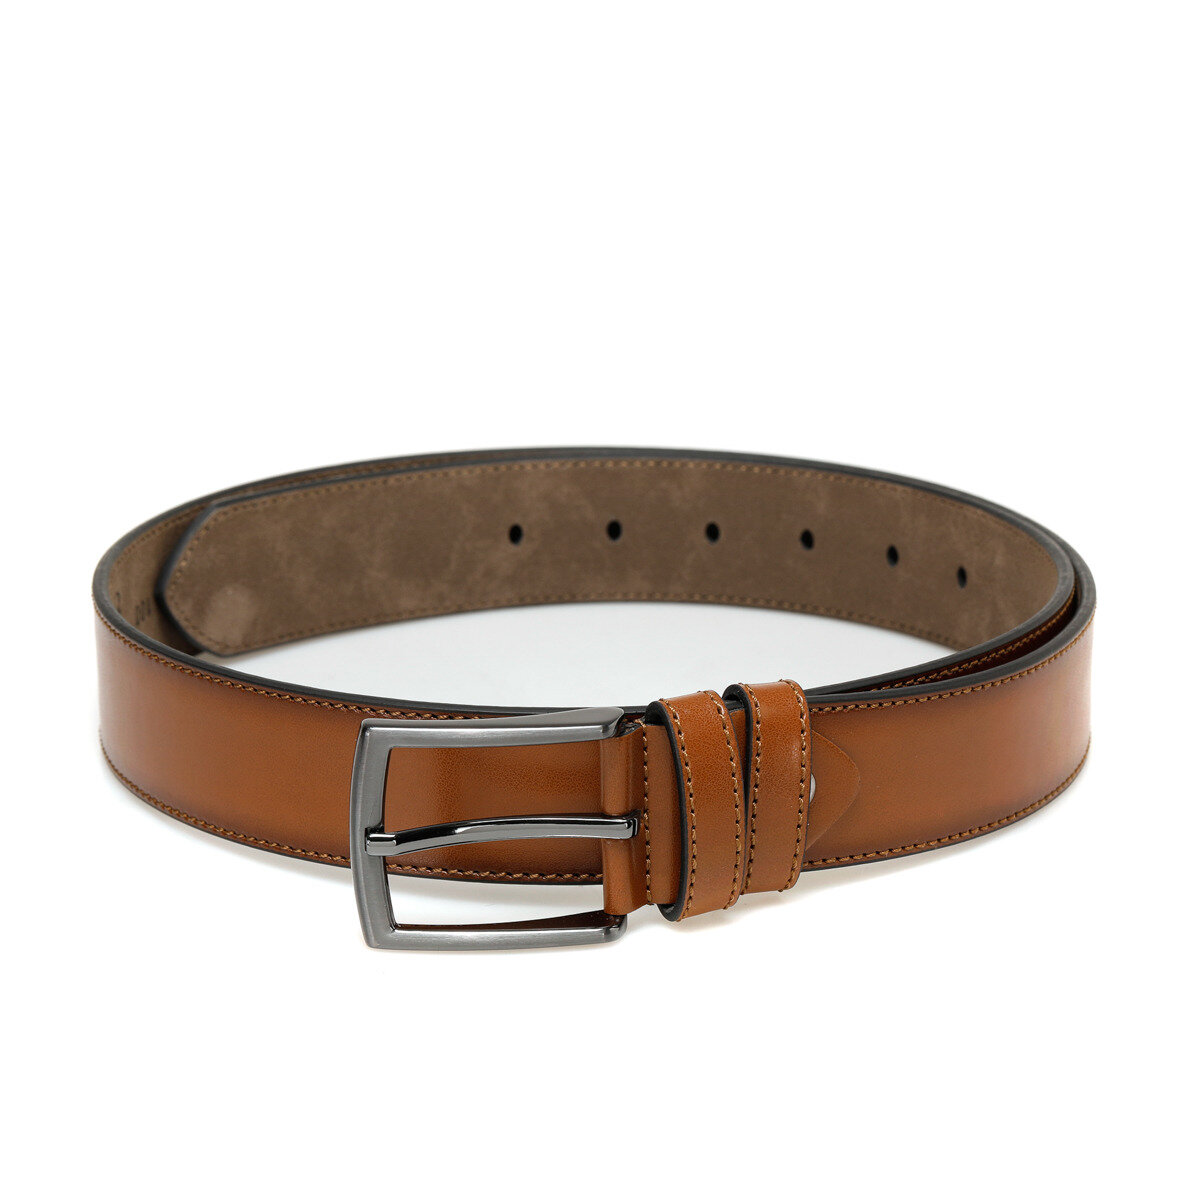 FLO 20M BR GENIS Tan Male Belt Oxide